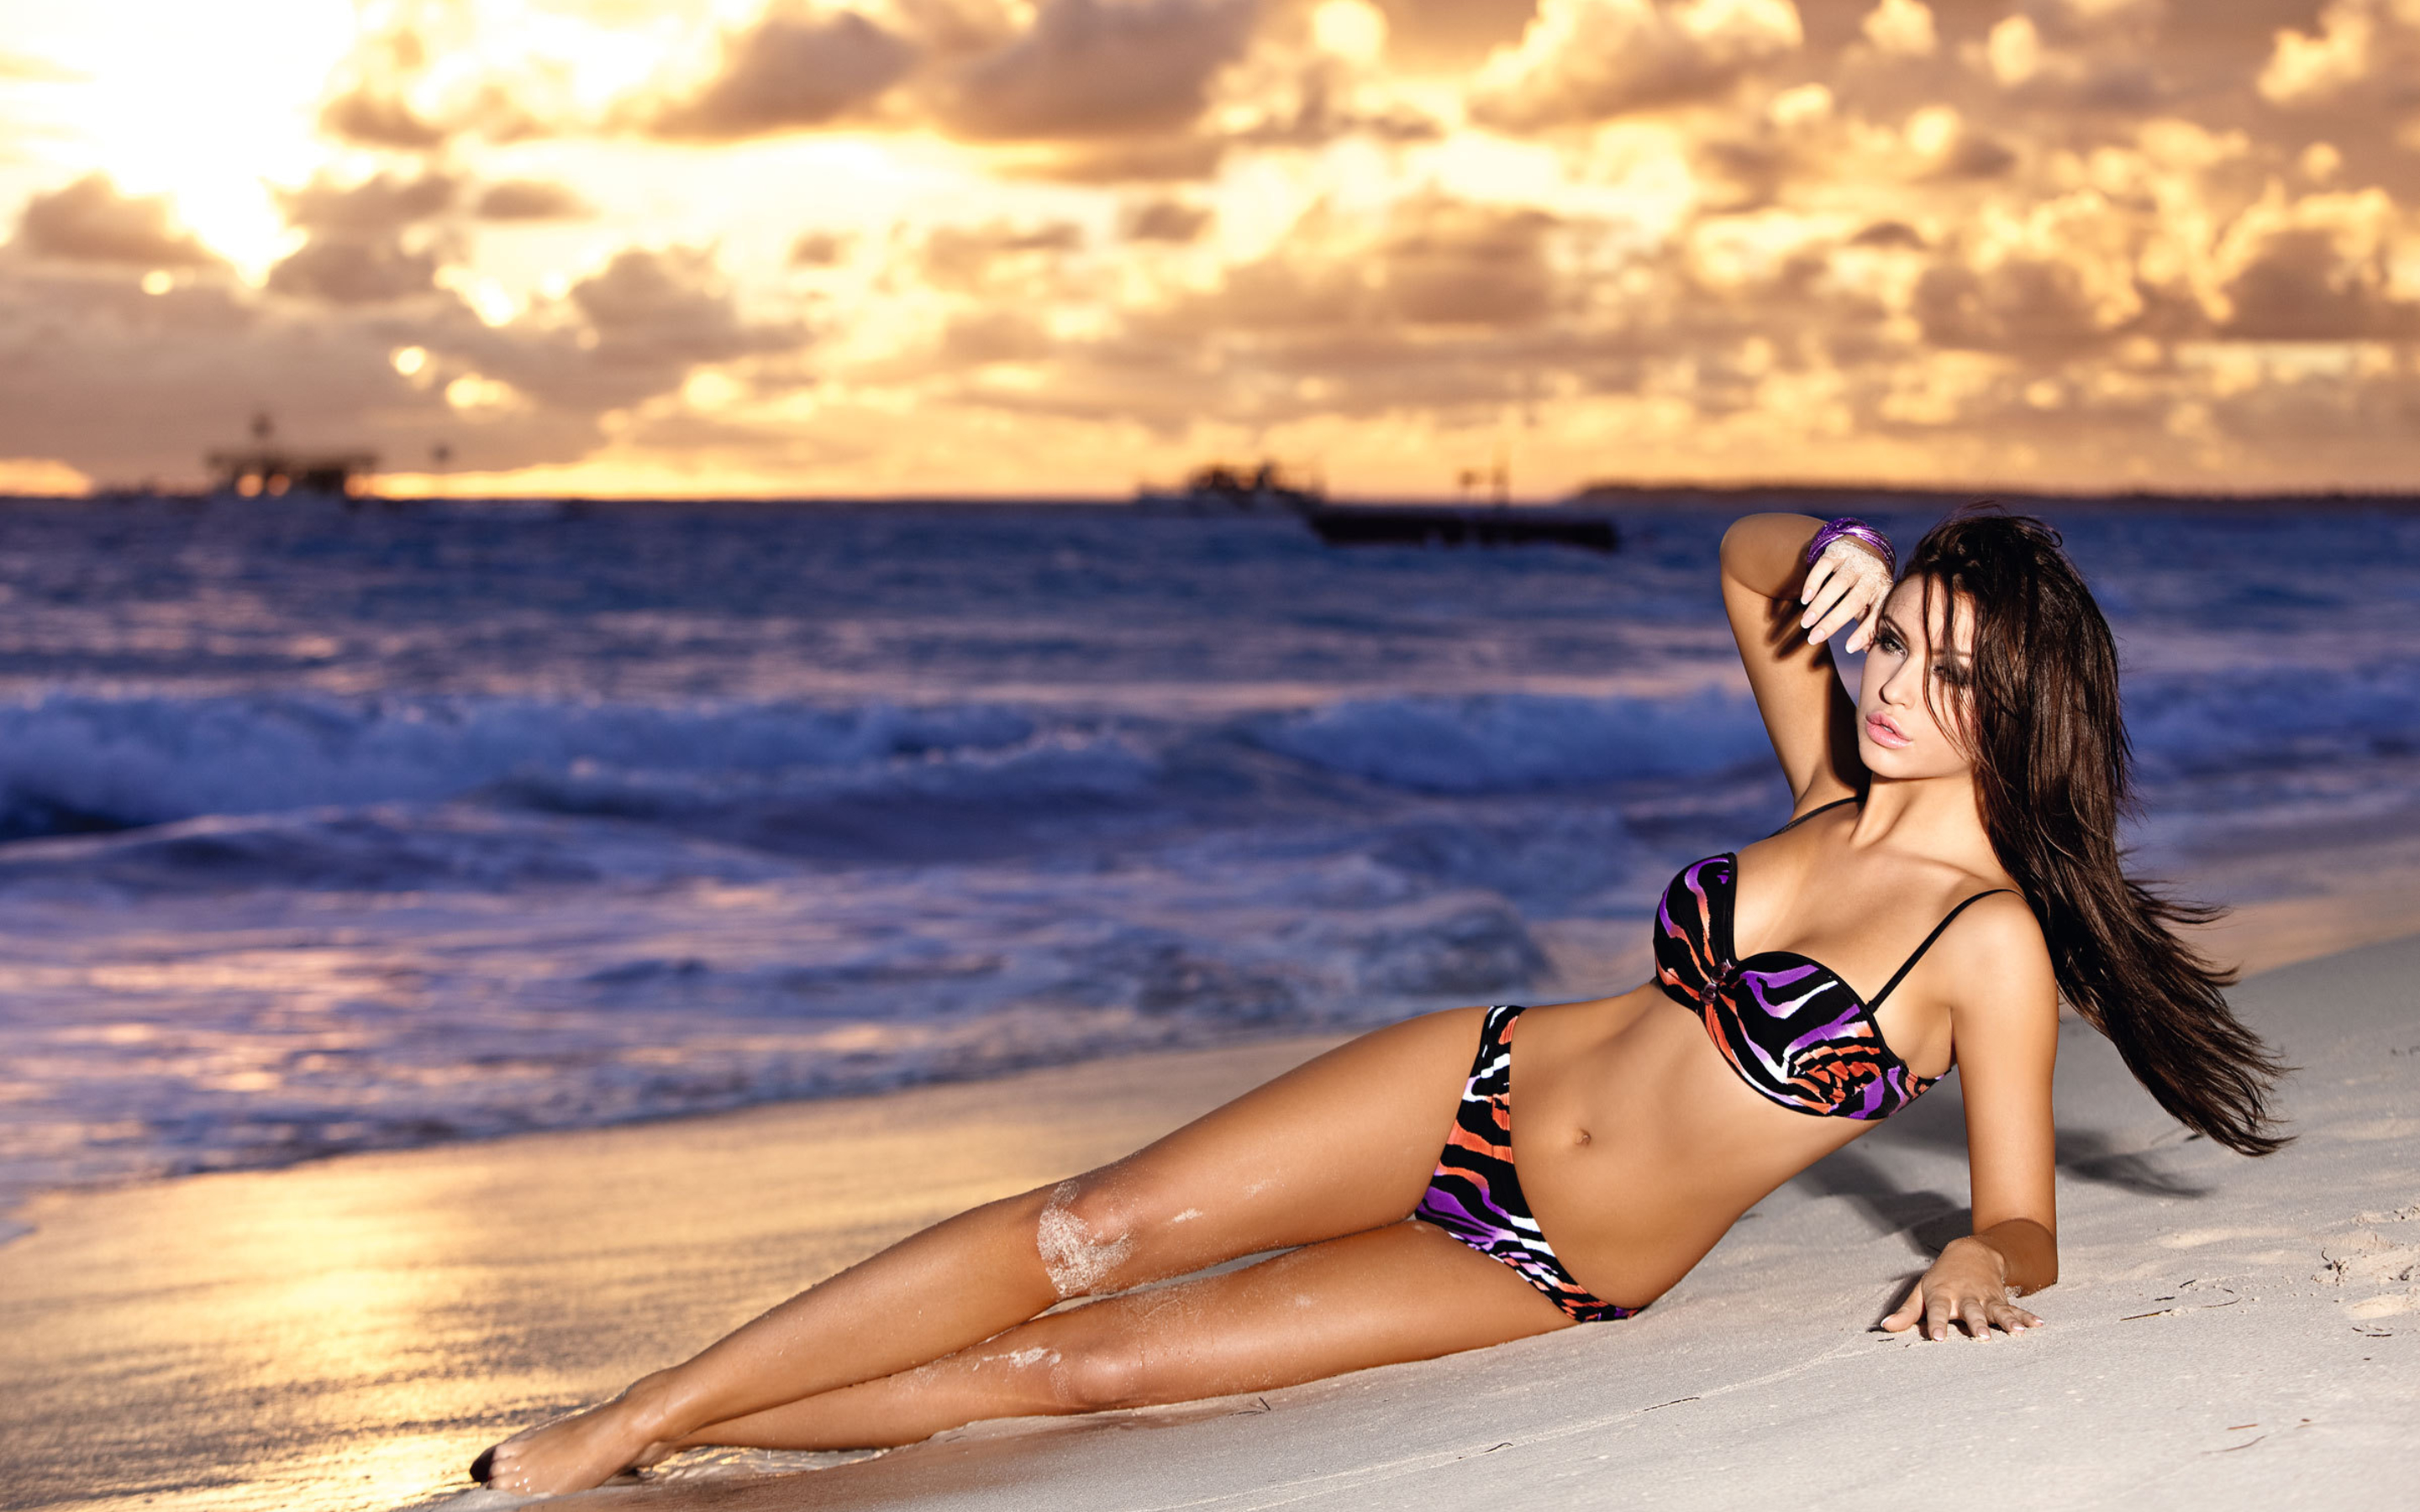 cool model in laying beach